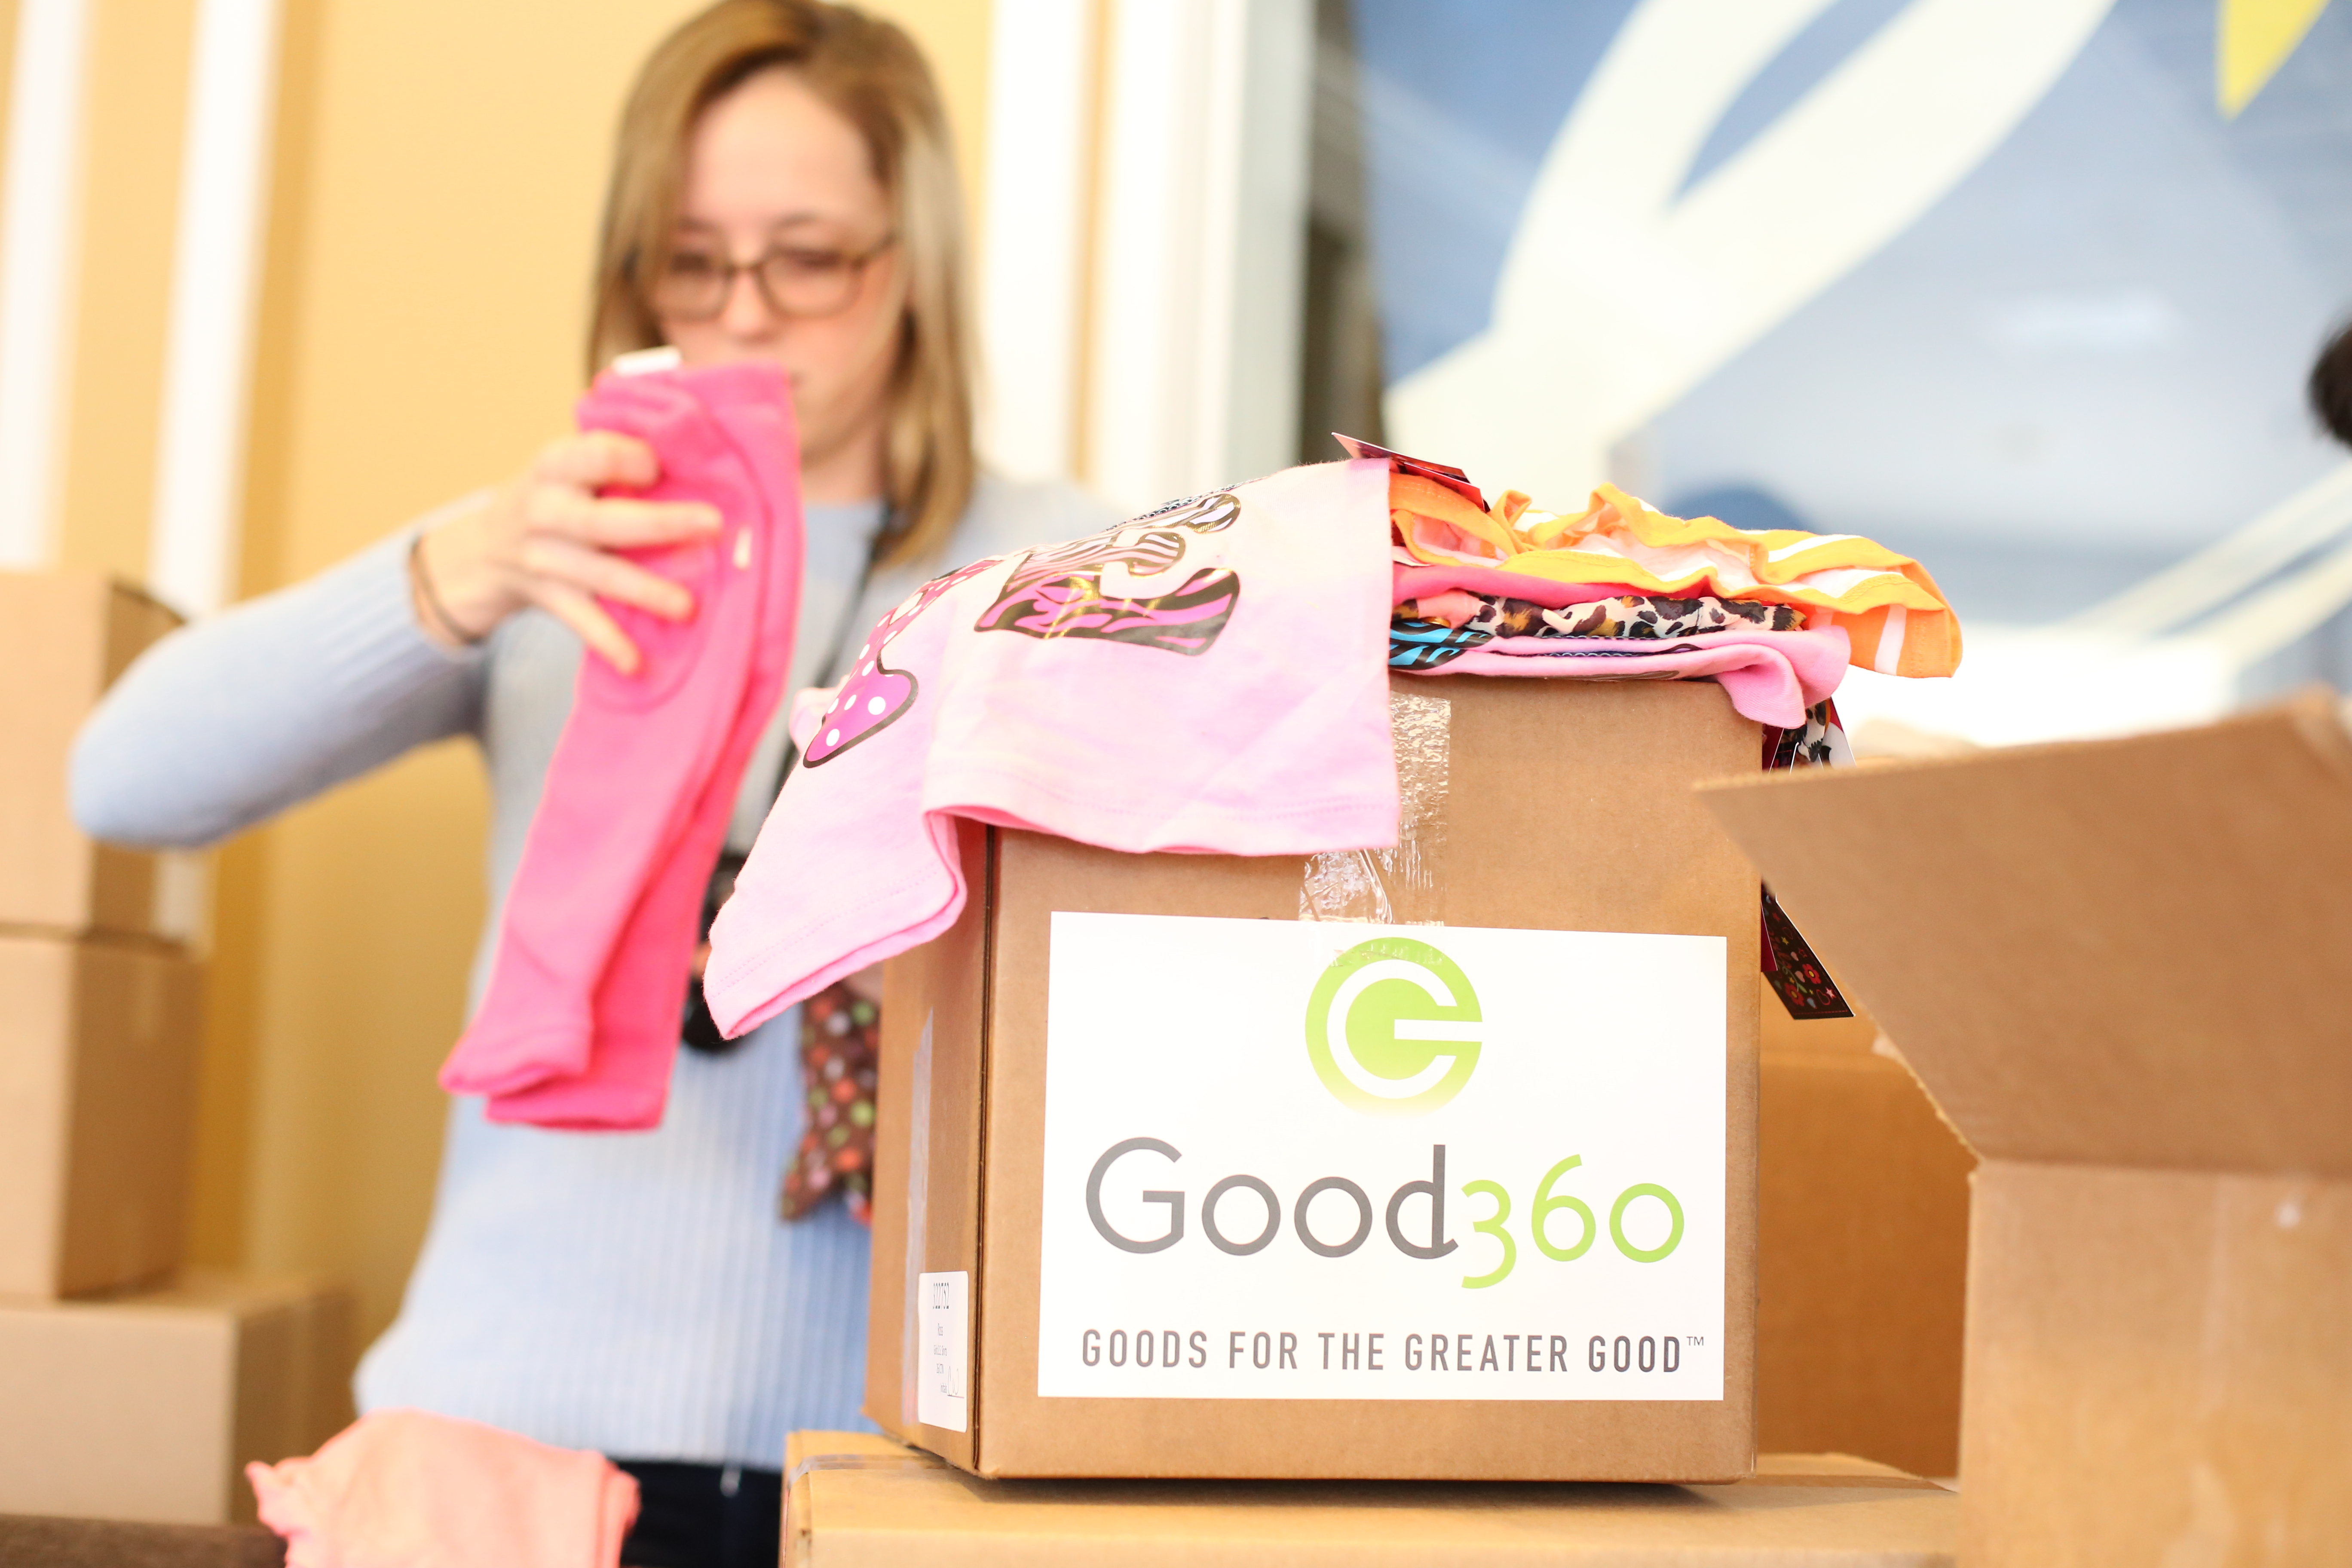 Product Donations: What Top Brands Give to Good360